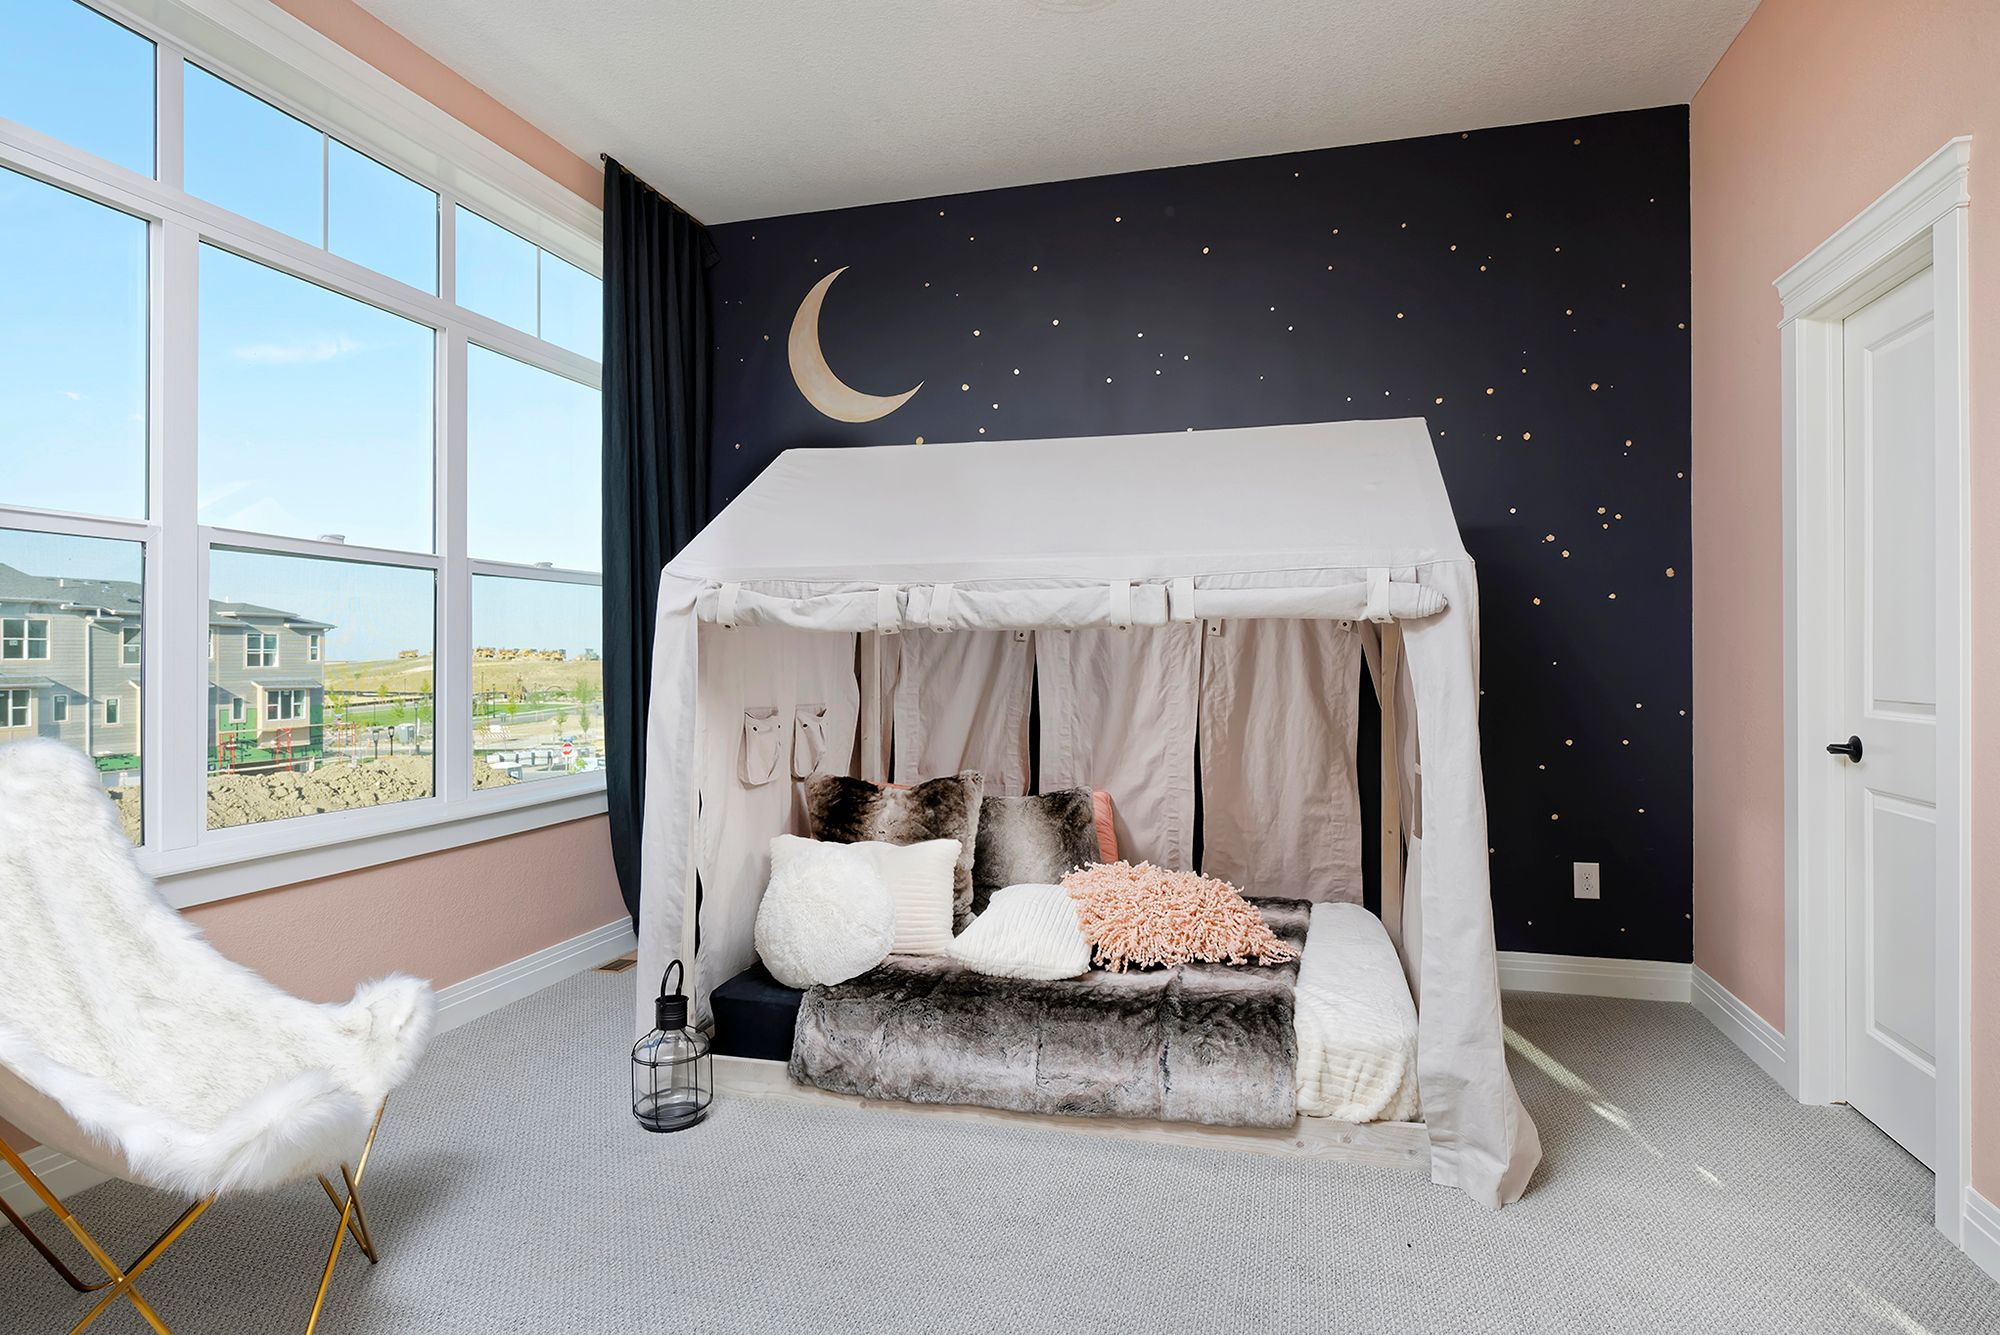 Bedroom featured in the Insight By Thrive Home Builders in Boulder-Longmont, CO